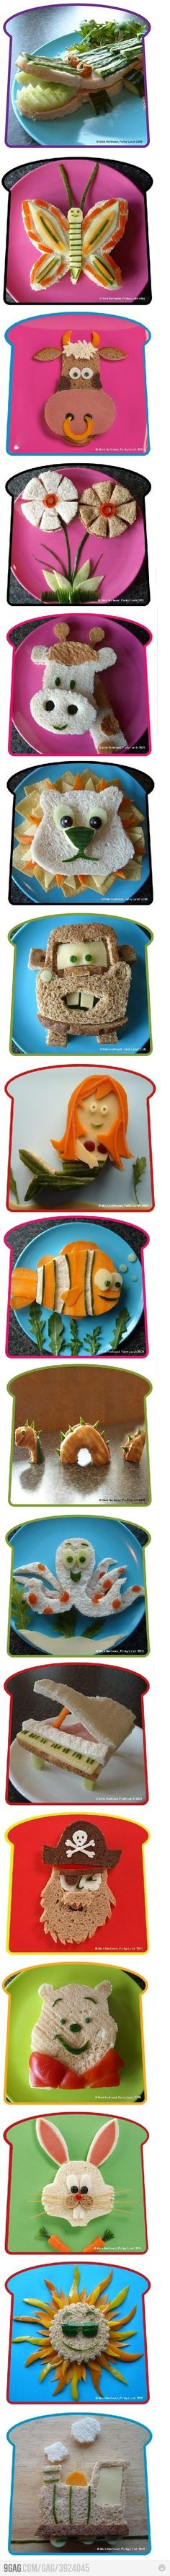 Food for kids #snacks